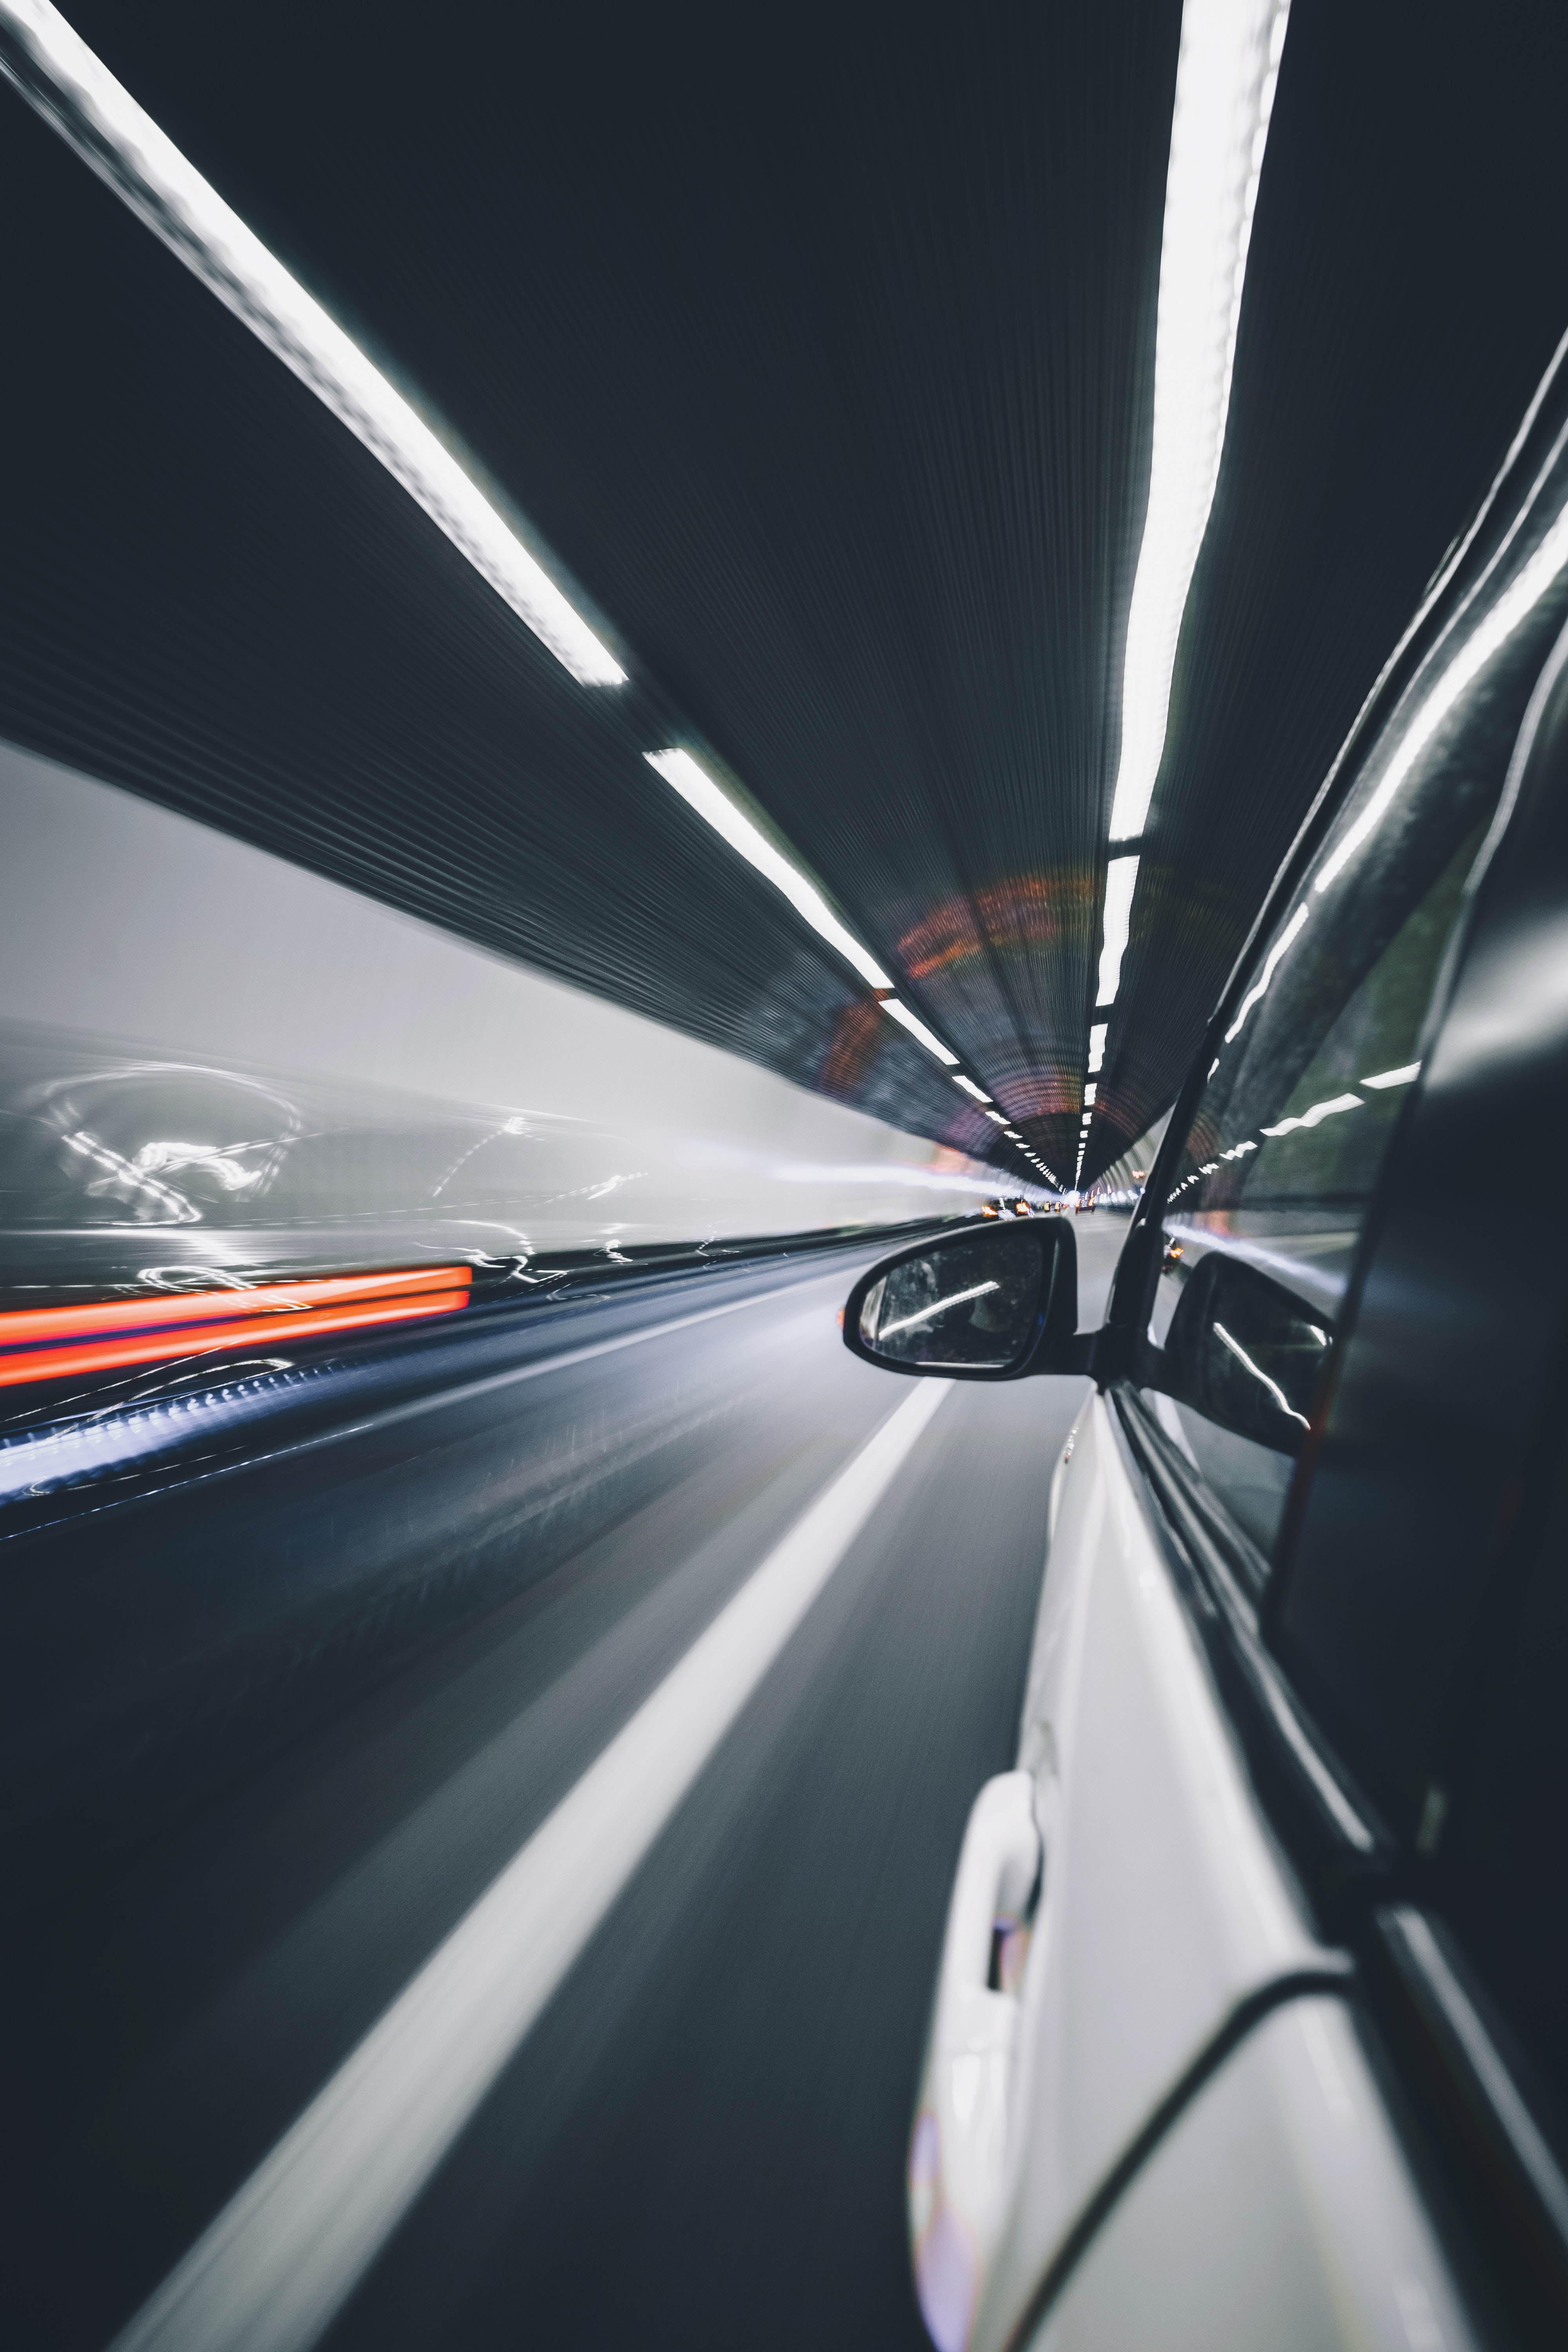 Long exposure photo of a white car driving through a tunnel with traffic lights